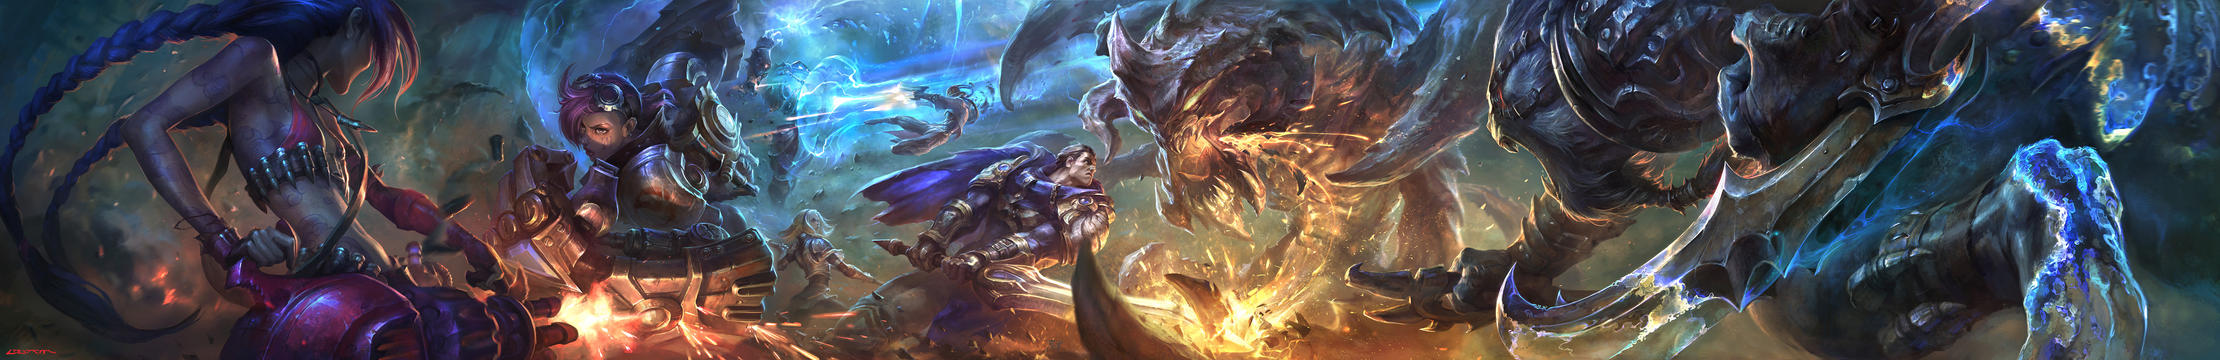 League of legends Youtube banner by su-ke